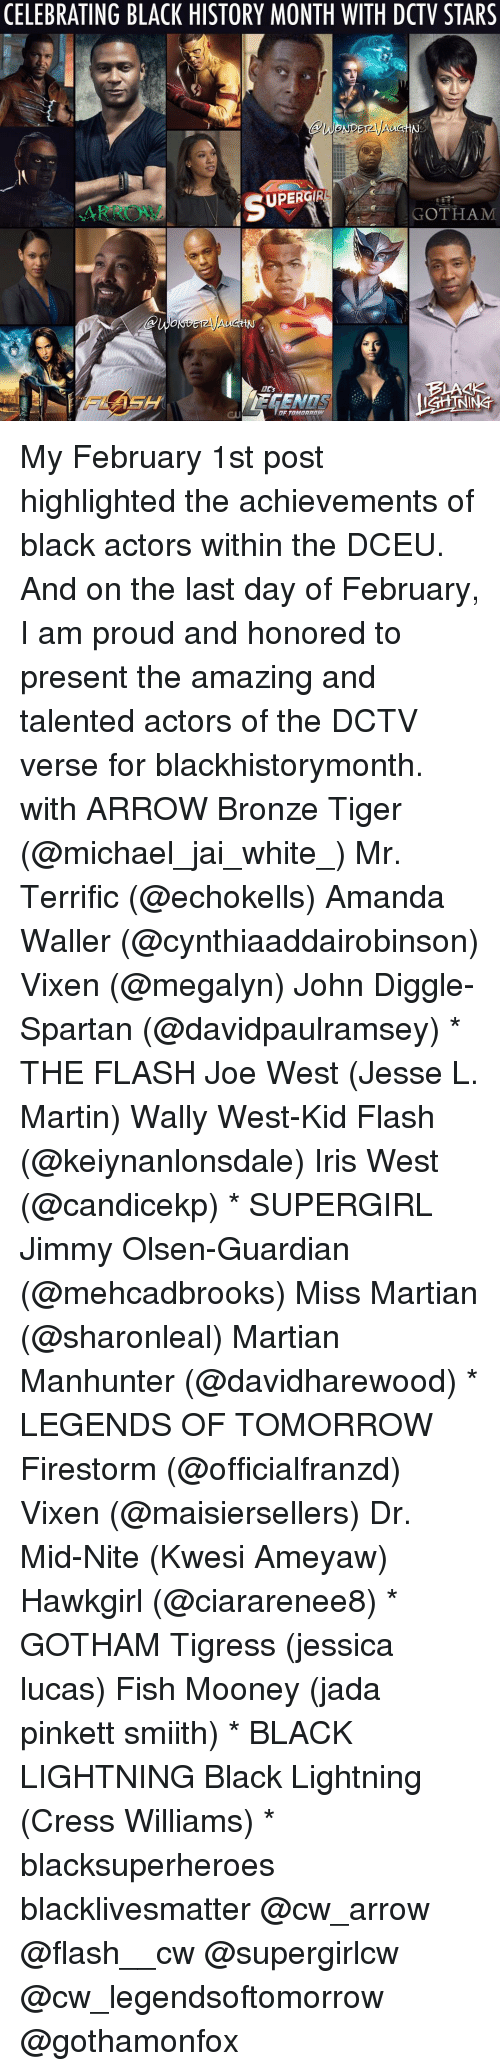 Martin, Memes, and Arrow: CELEBRATING BLACK HISTORY MONTH WITH DCTV STARS  UPERGIRL  GOTHAM  LGHINING My February 1st post highlighted the achievements of black actors within the DCEU. And on the last day of February, I am proud and honored to present the amazing and talented actors of the DCTV verse for blackhistorymonth. with ARROW Bronze Tiger (@michael_jai_white_) Mr. Terrific (@echokells) Amanda Waller (@cynthiaaddairobinson) Vixen (@megalyn) John Diggle-Spartan (@davidpaulramsey) * THE FLASH Joe West (Jesse L. Martin) Wally West-Kid Flash (@keiynanlonsdale) Iris West (@candicekp) * SUPERGIRL Jimmy Olsen-Guardian (@mehcadbrooks) Miss Martian (@sharonleal) Martian Manhunter (@davidharewood) * LEGENDS OF TOMORROW Firestorm (@officialfranzd) Vixen (@maisiersellers) Dr. Mid-Nite (Kwesi Ameyaw) Hawkgirl (@ciararenee8) * GOTHAM Tigress (jessica lucas) Fish Mooney (jada pinkett smiith) * BLACK LIGHTNING Black Lightning (Cress Williams) * blacksuperheroes blacklivesmatter @cw_arrow @flash__cw @supergirlcw @cw_legendsoftomorrow @gothamonfox